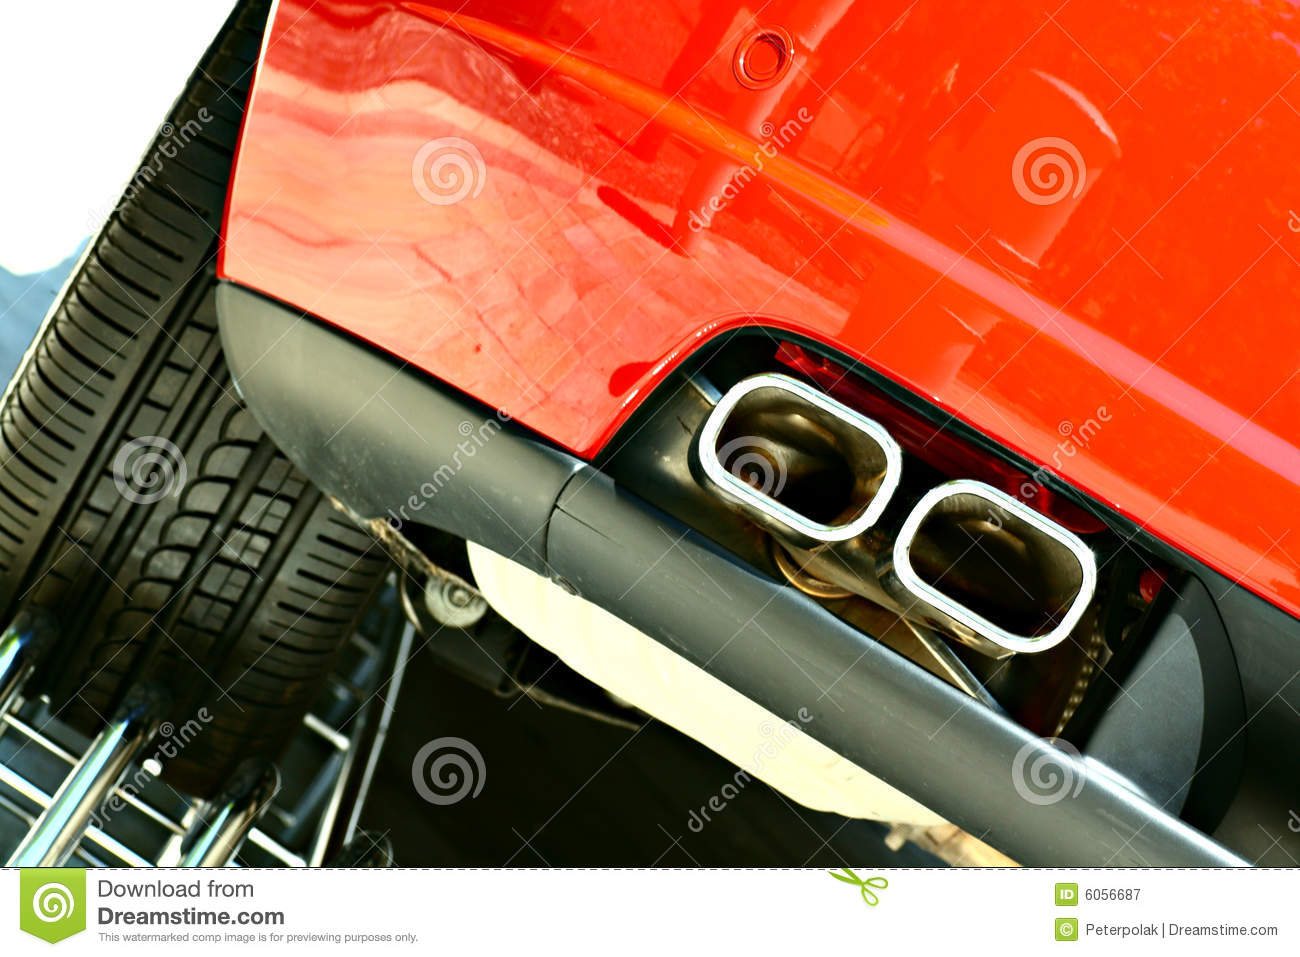 Double exhaust and wheel of a sports car